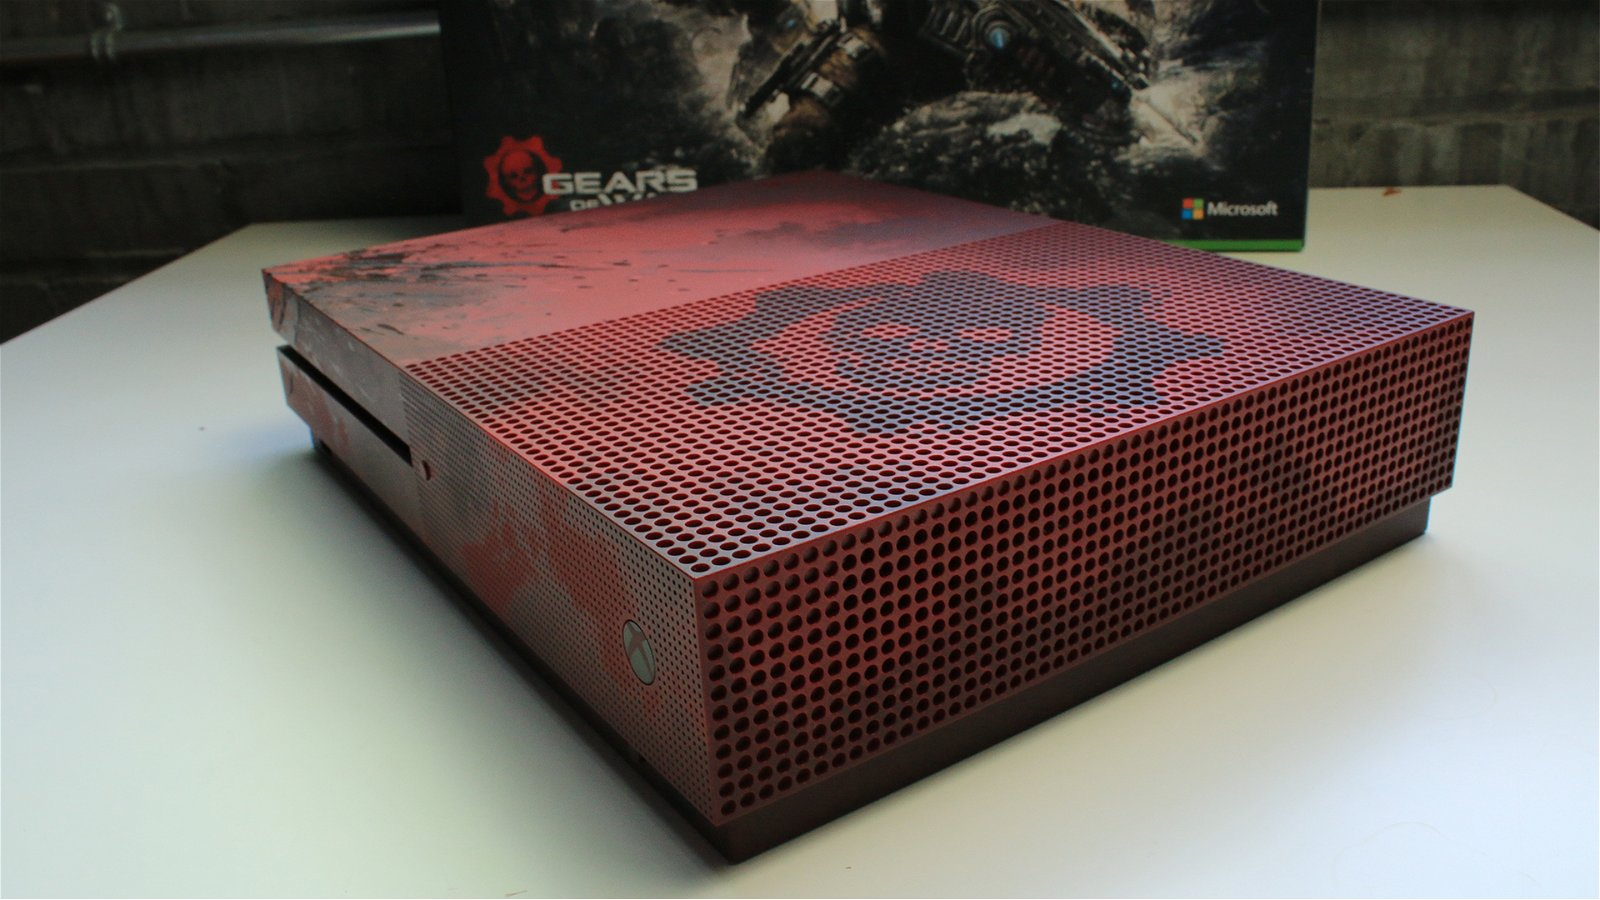 Unboxing the Gears of War 4 Xbox One S 12